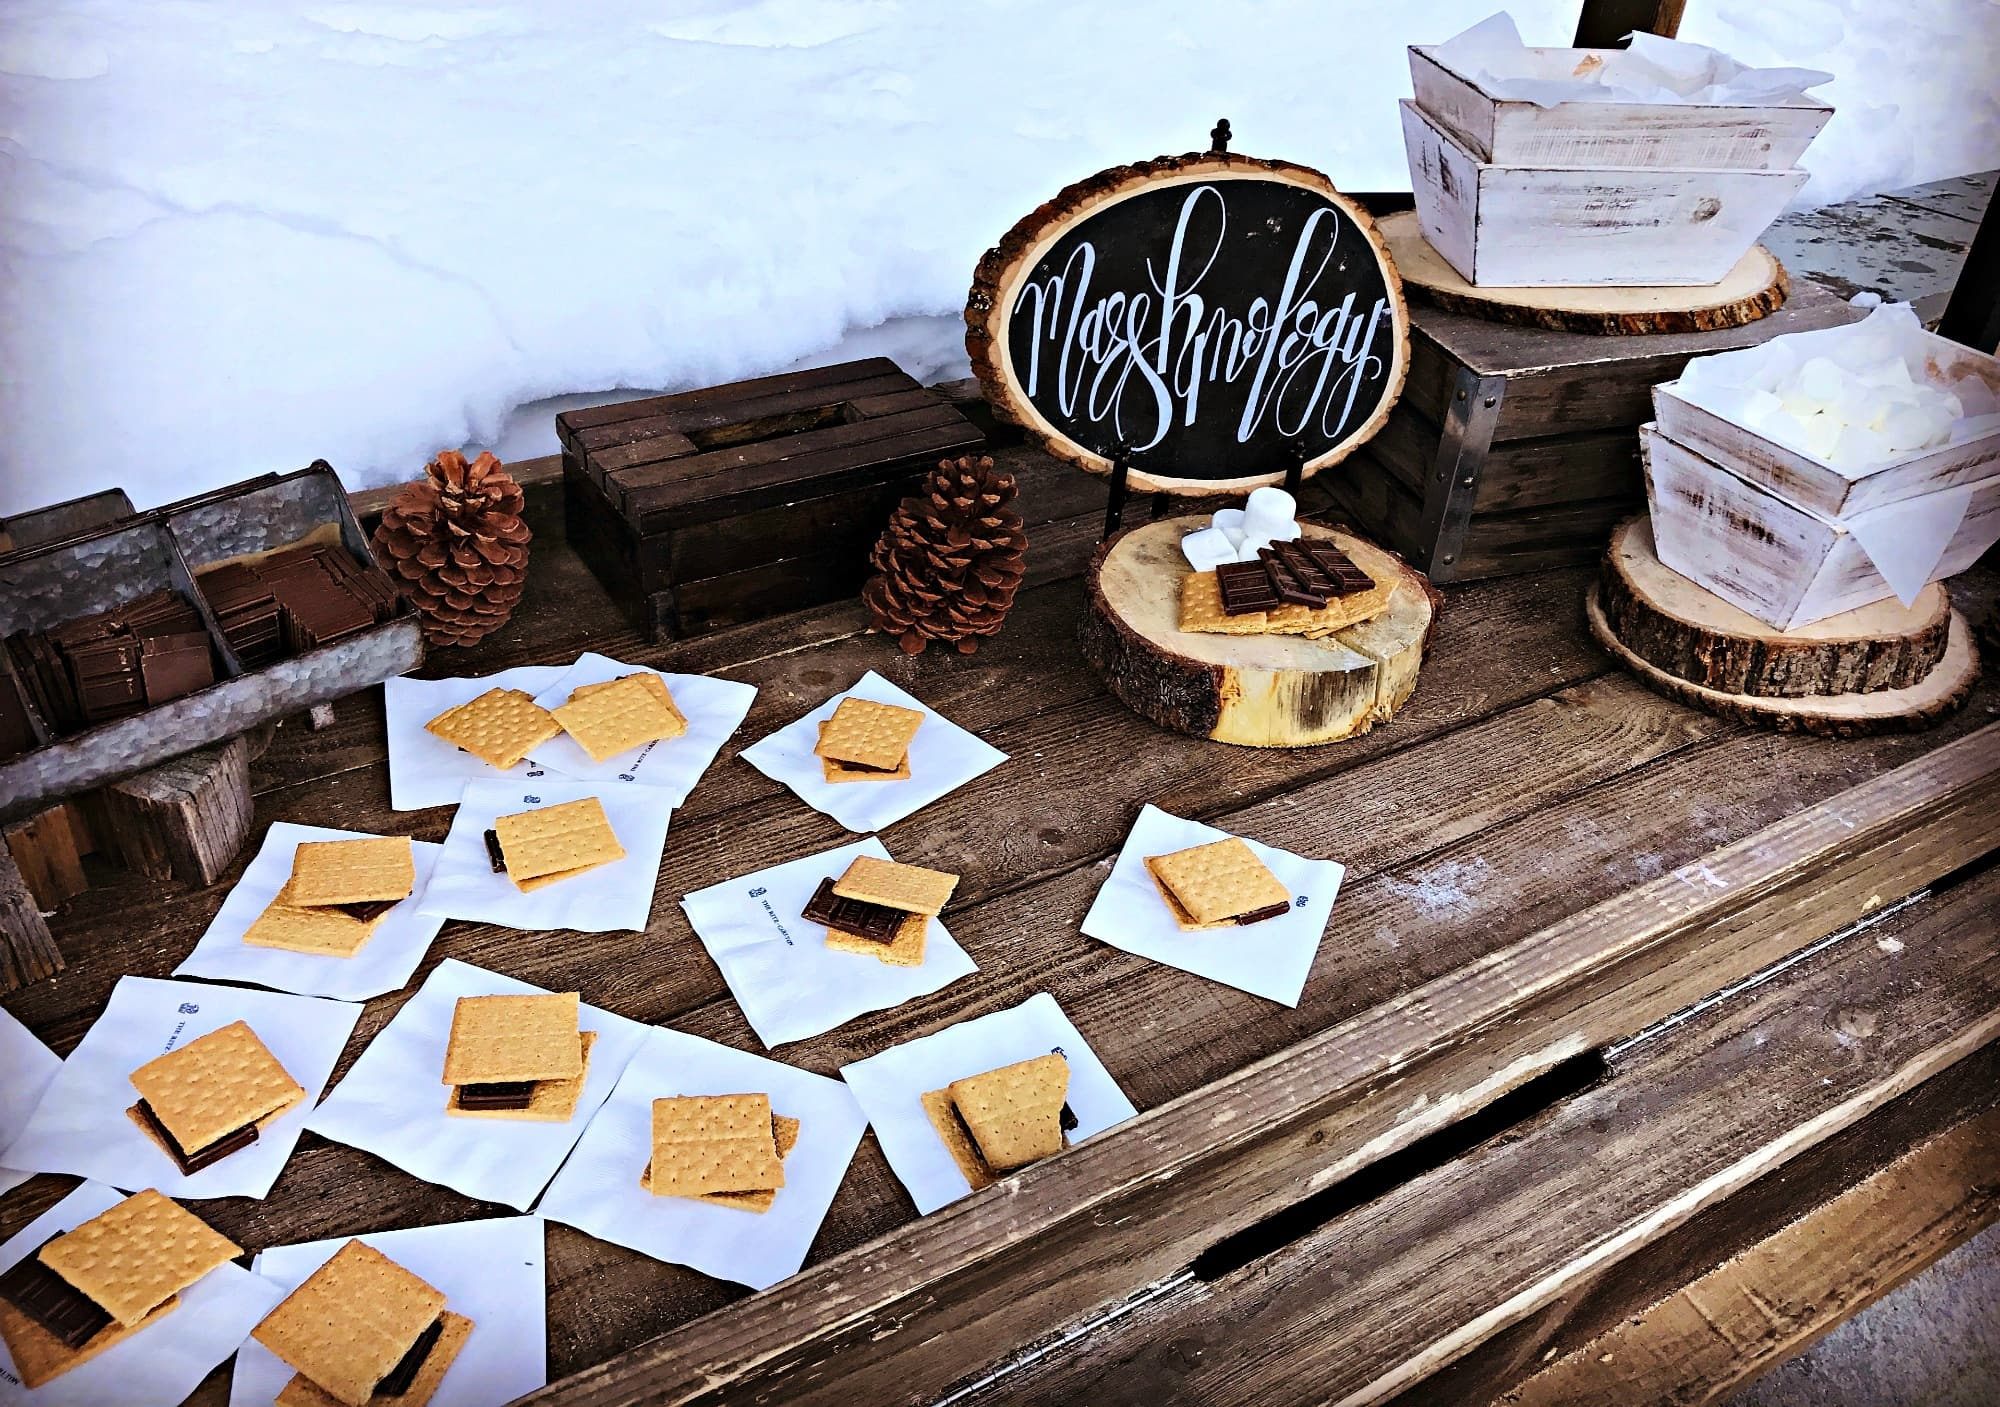 Marshmalogy at The Ritz-Carlton, Lake Tahoe makes a wonderful apres-ski treat at Northstar Ski Resort with kids